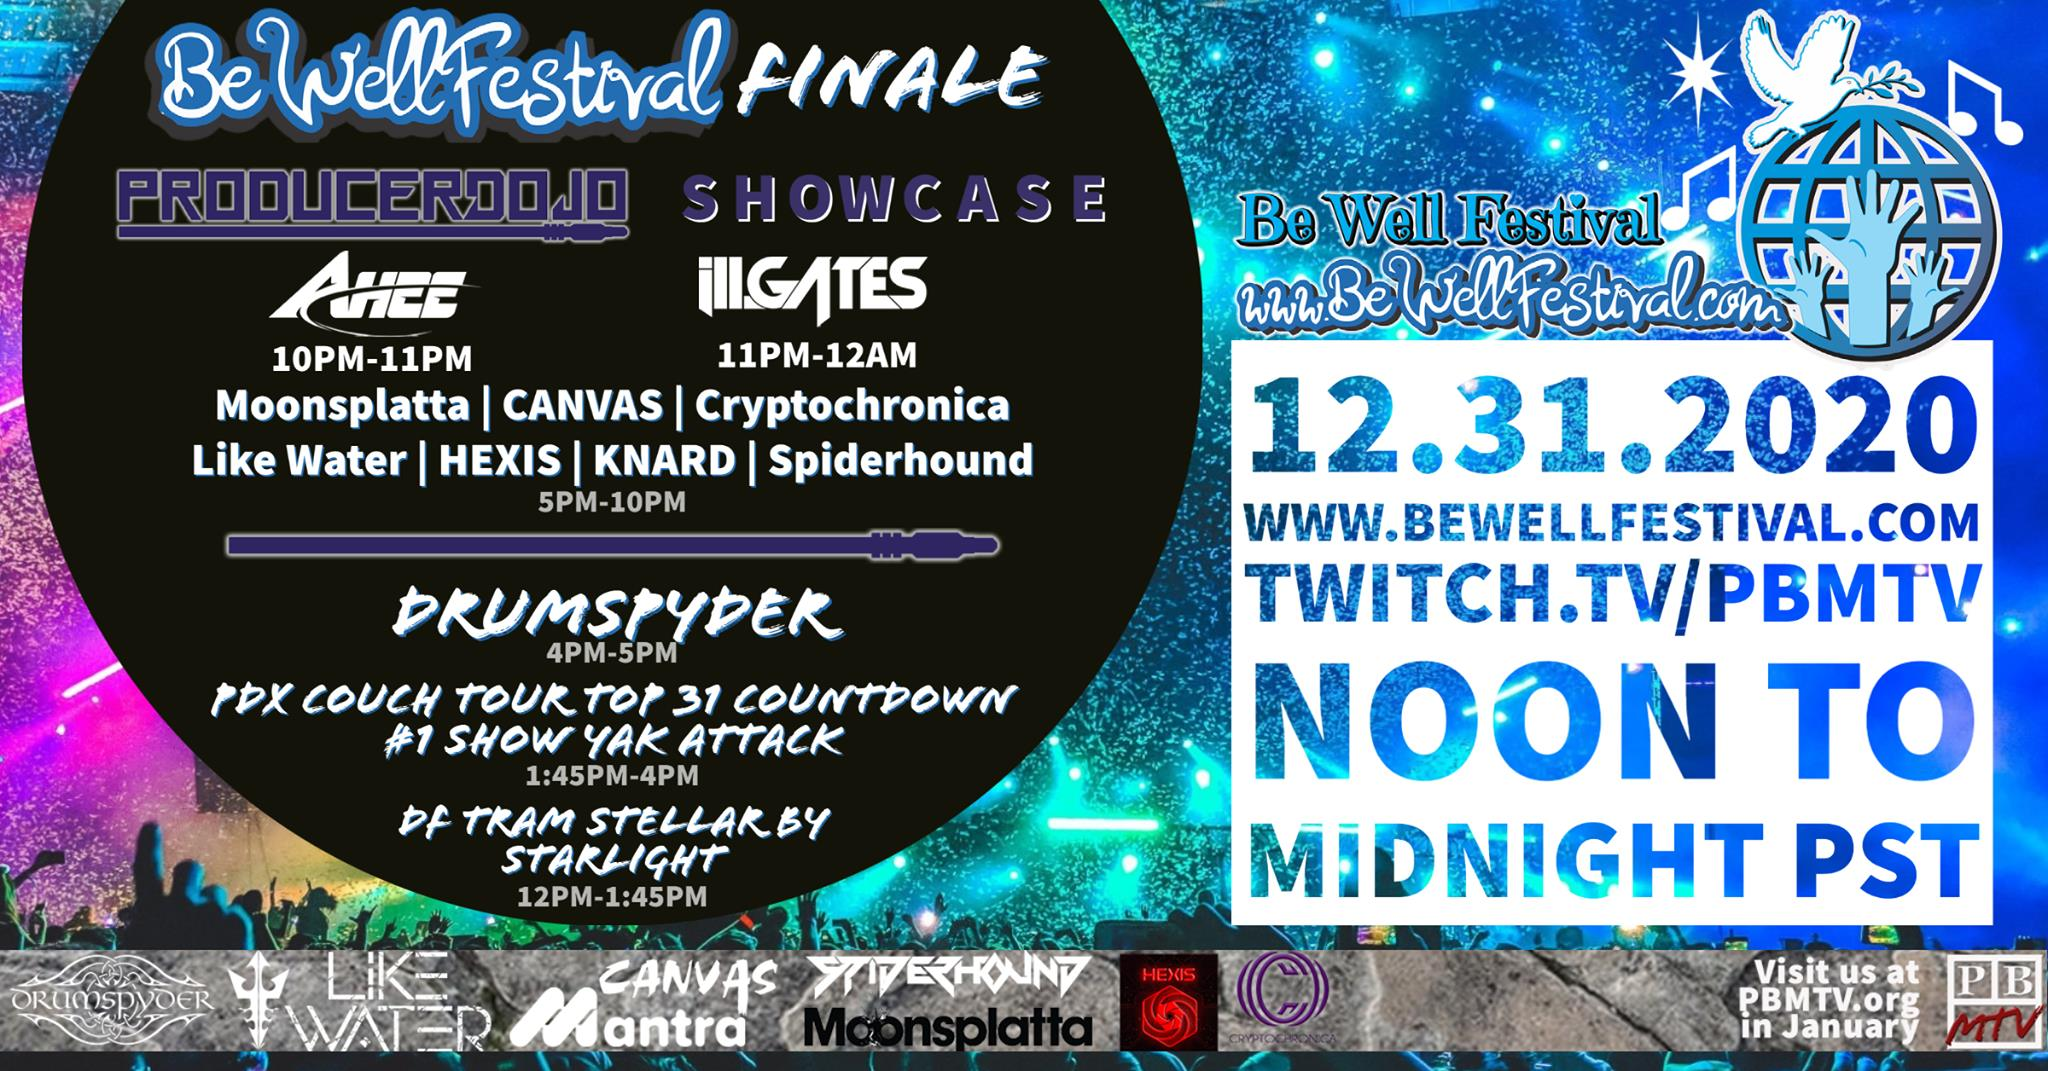 Be Well Festival NYE Finale - December 31, 2020 - Noon to midnite